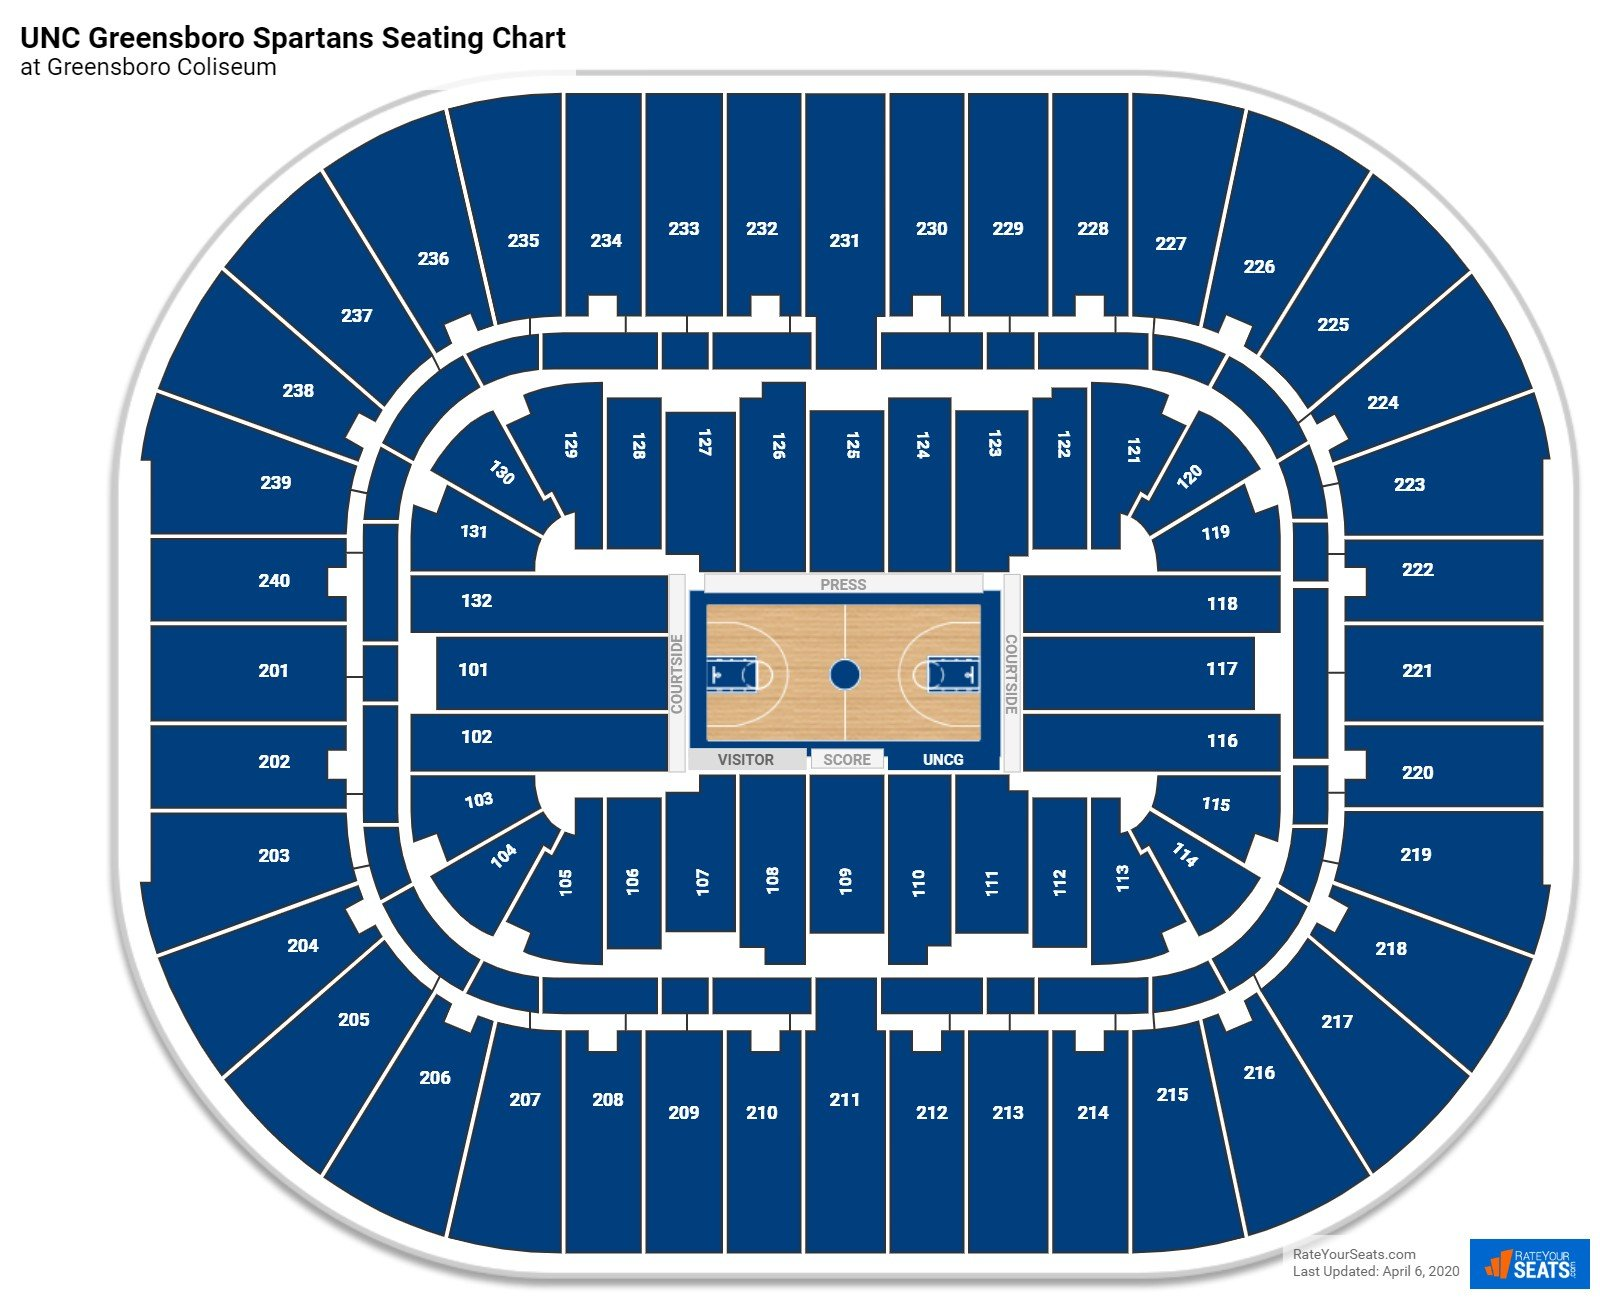 UNC Greensboro Basketball Seating Chart